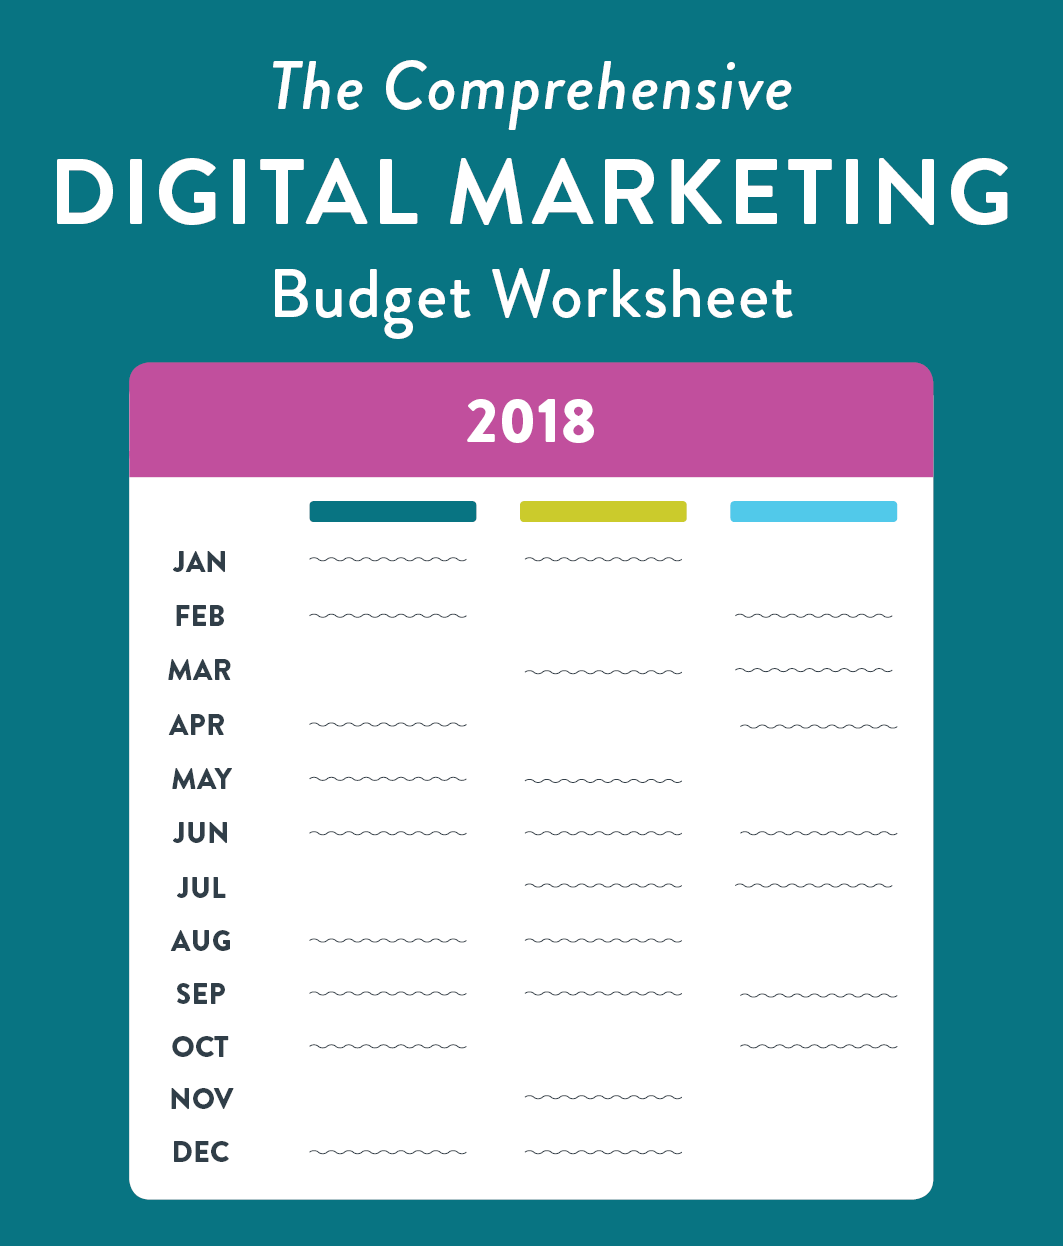 Annual Marketing Budget Worksheet - Hatchbuck